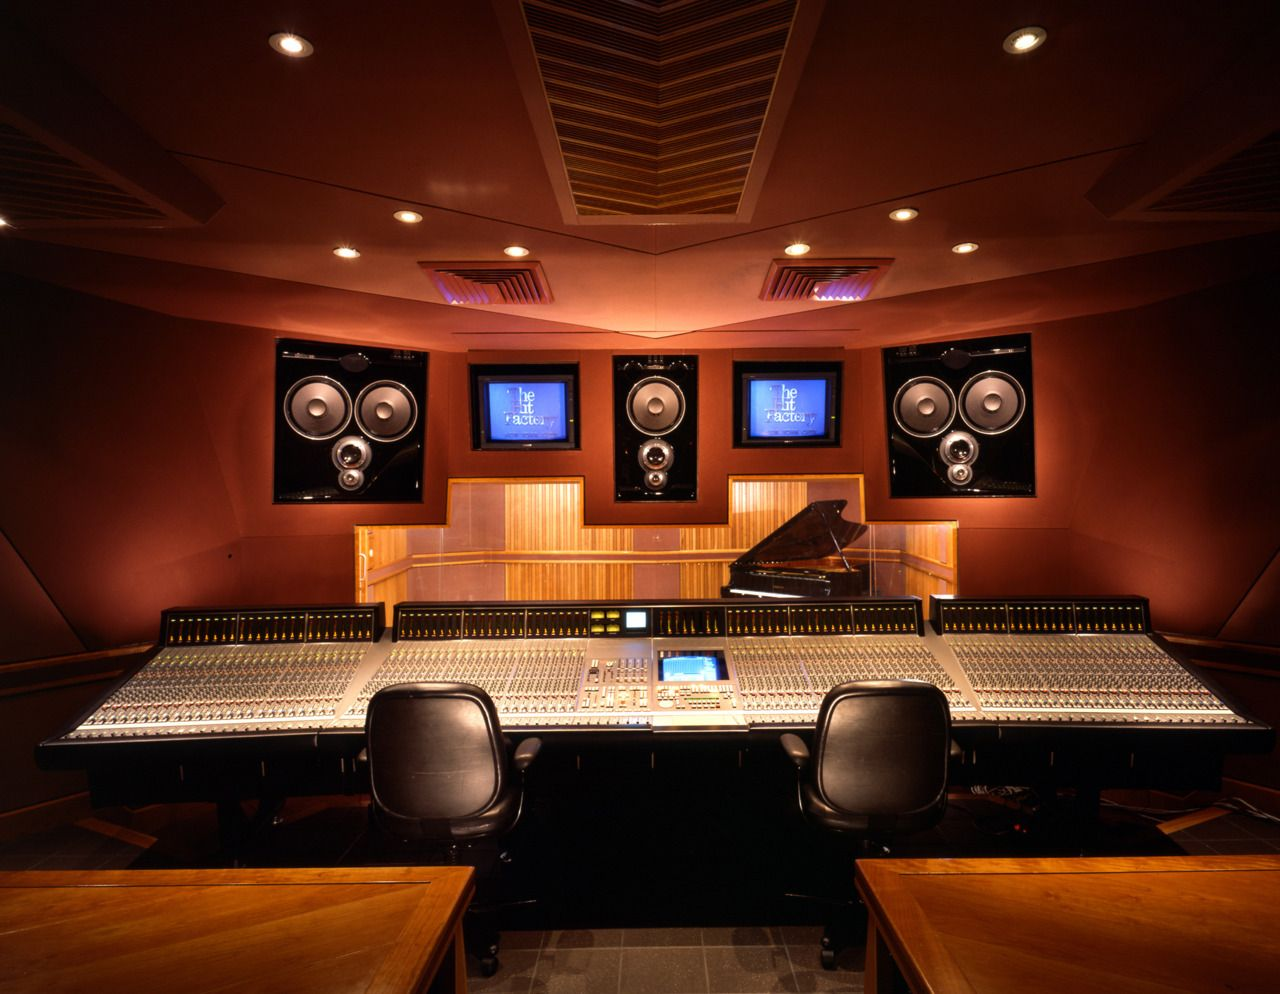 Terrific 17 Best Images About Recording Studio On Pinterest Music Rooms Largest Home Design Picture Inspirations Pitcheantrous